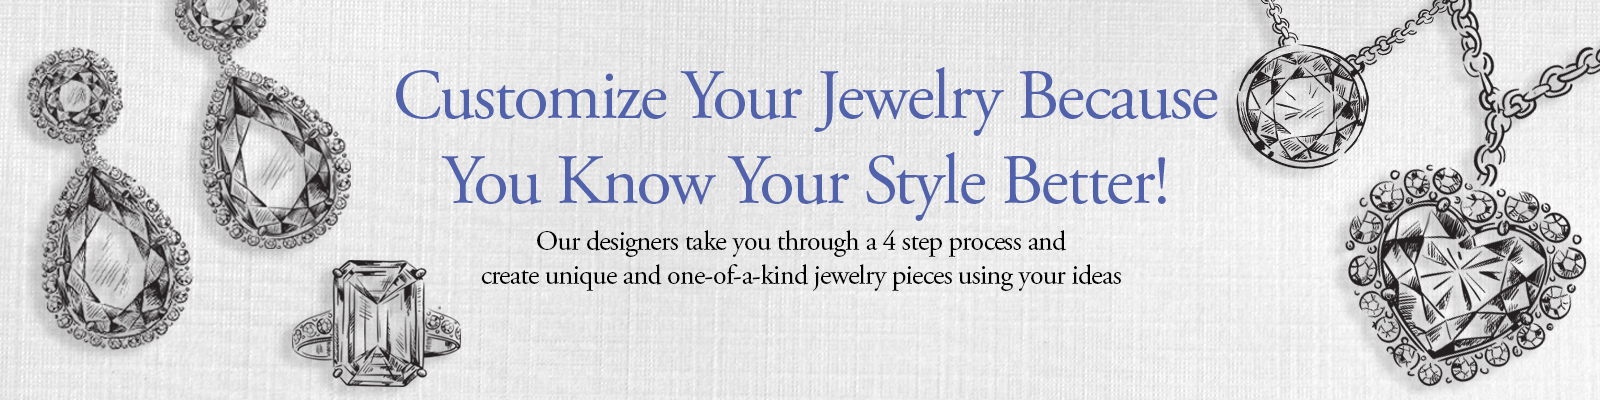 shop-diamond-rings-jewelery-gifts-canadian-engagement-rings